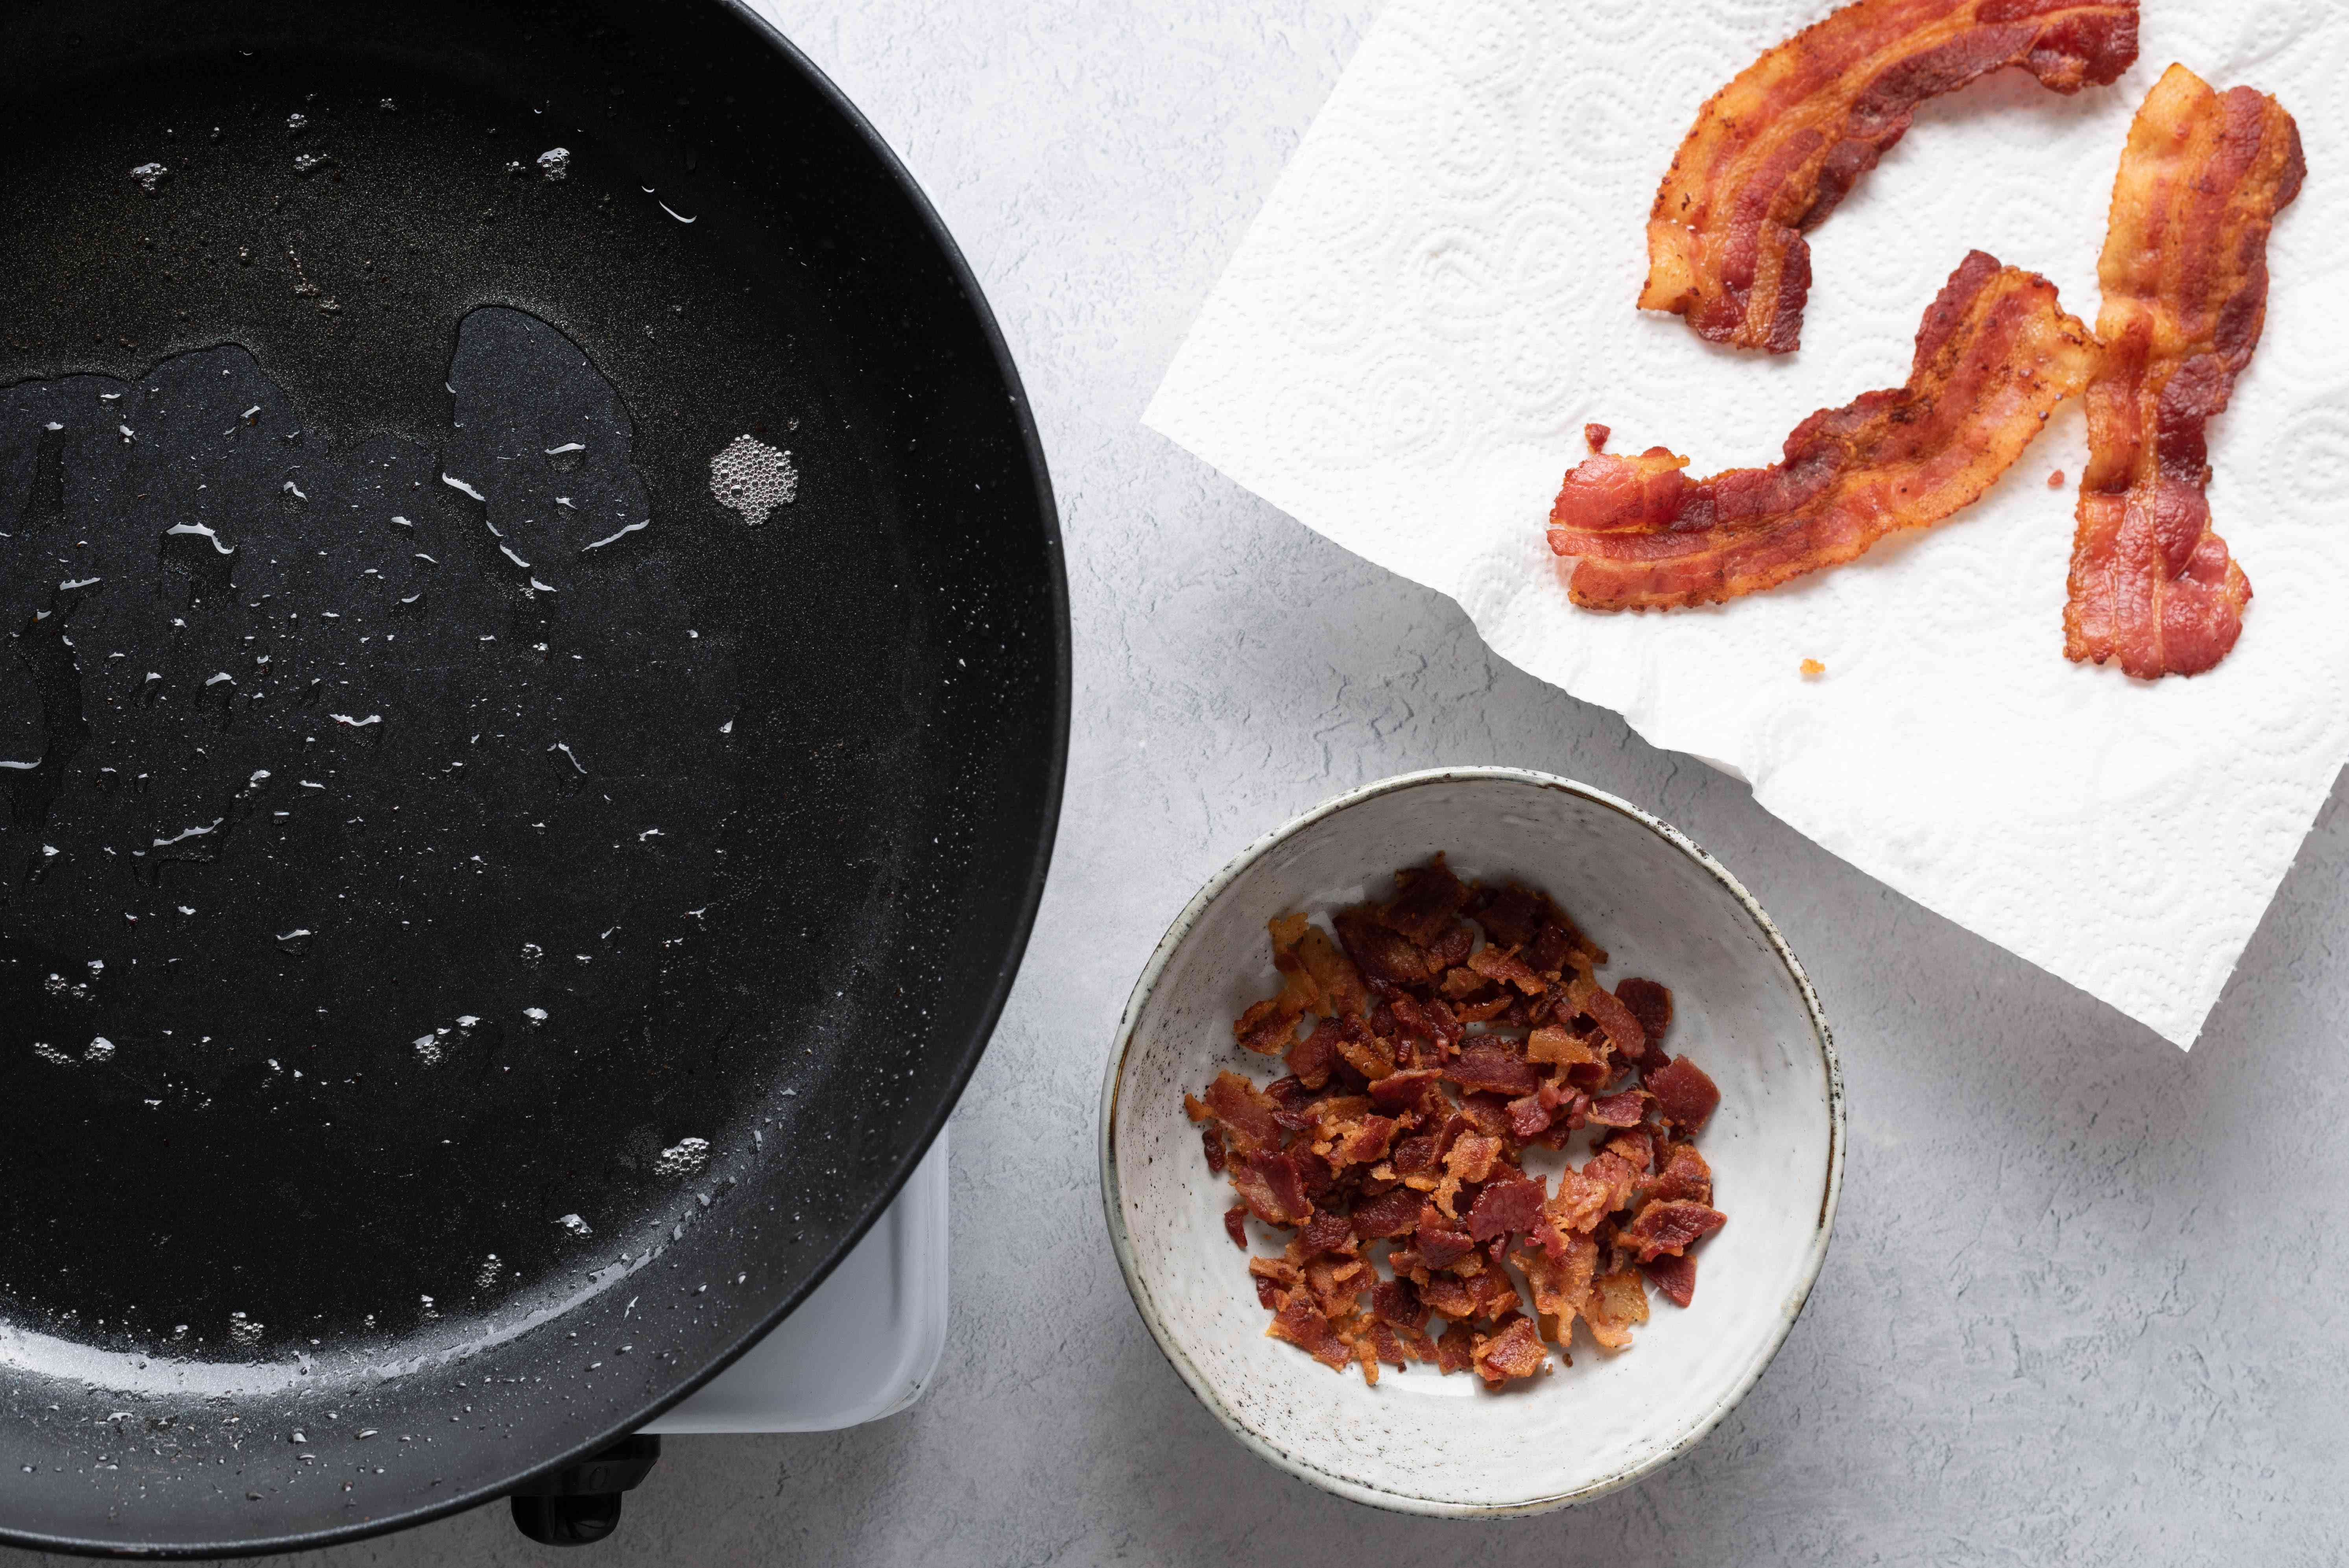 fried bacon in a bowl and on paper towels